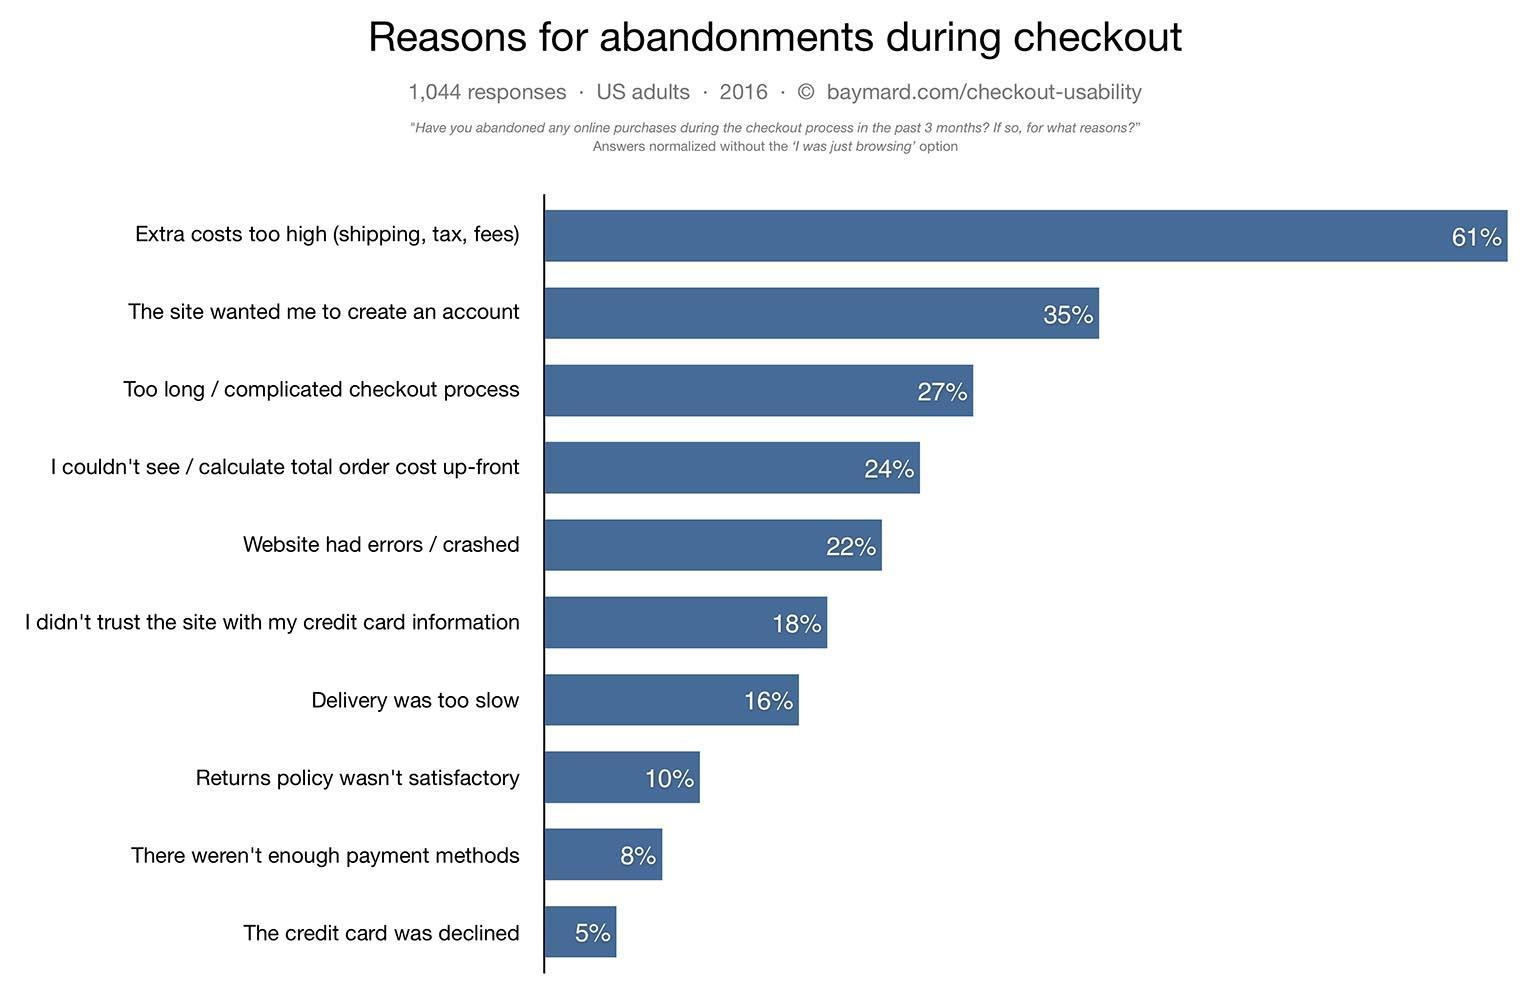 Reasons why users abandon eCommerce checkouts